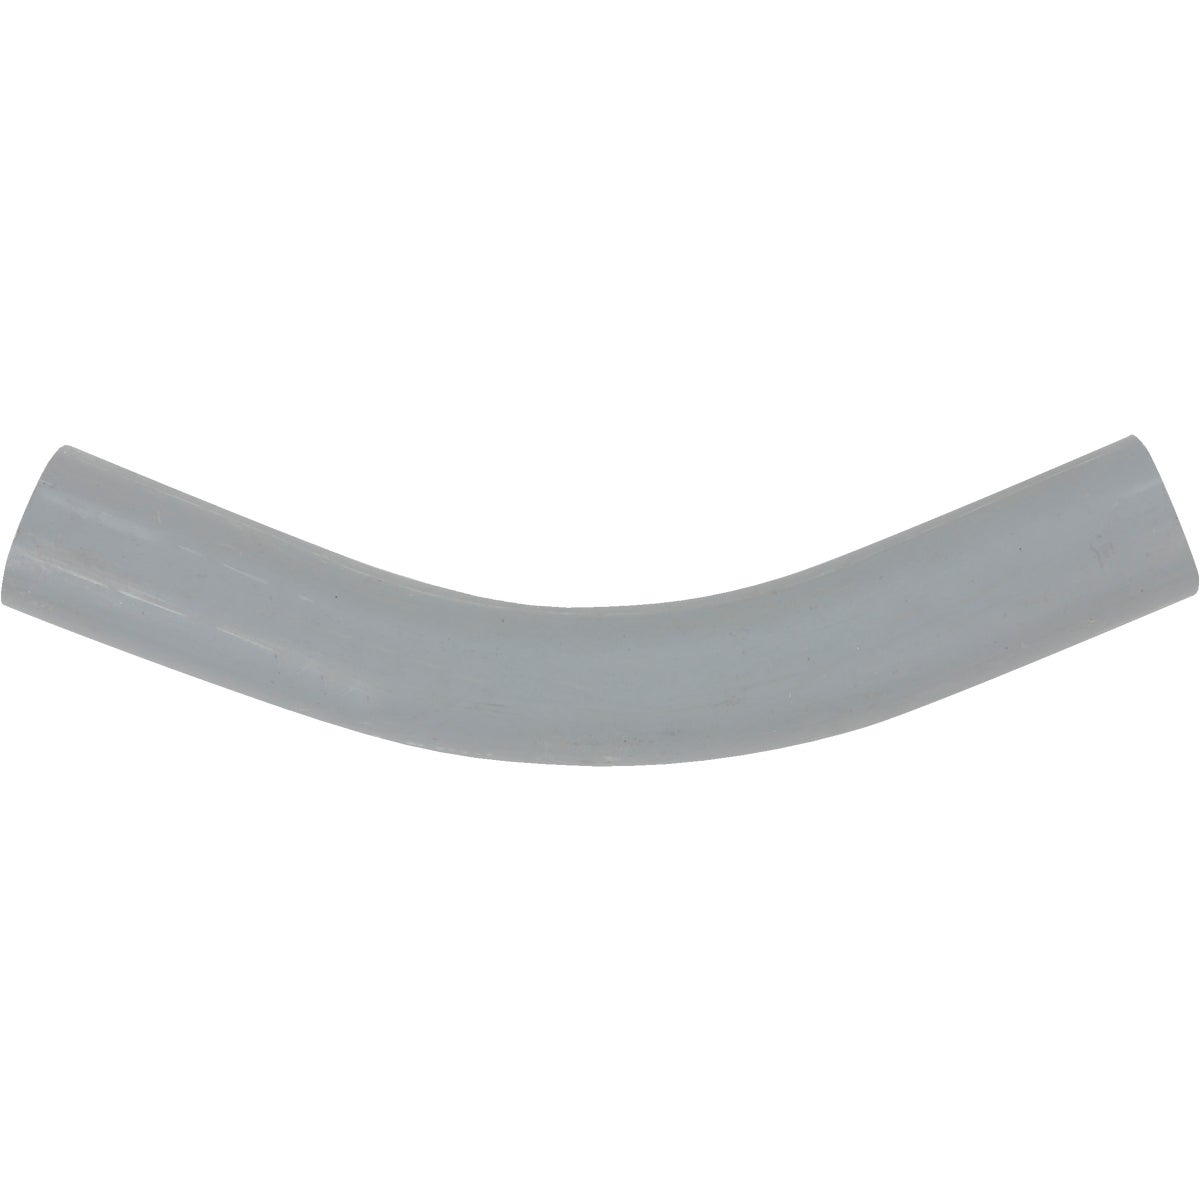 "1-1/4"" 45 DEG PVC ELBOW"